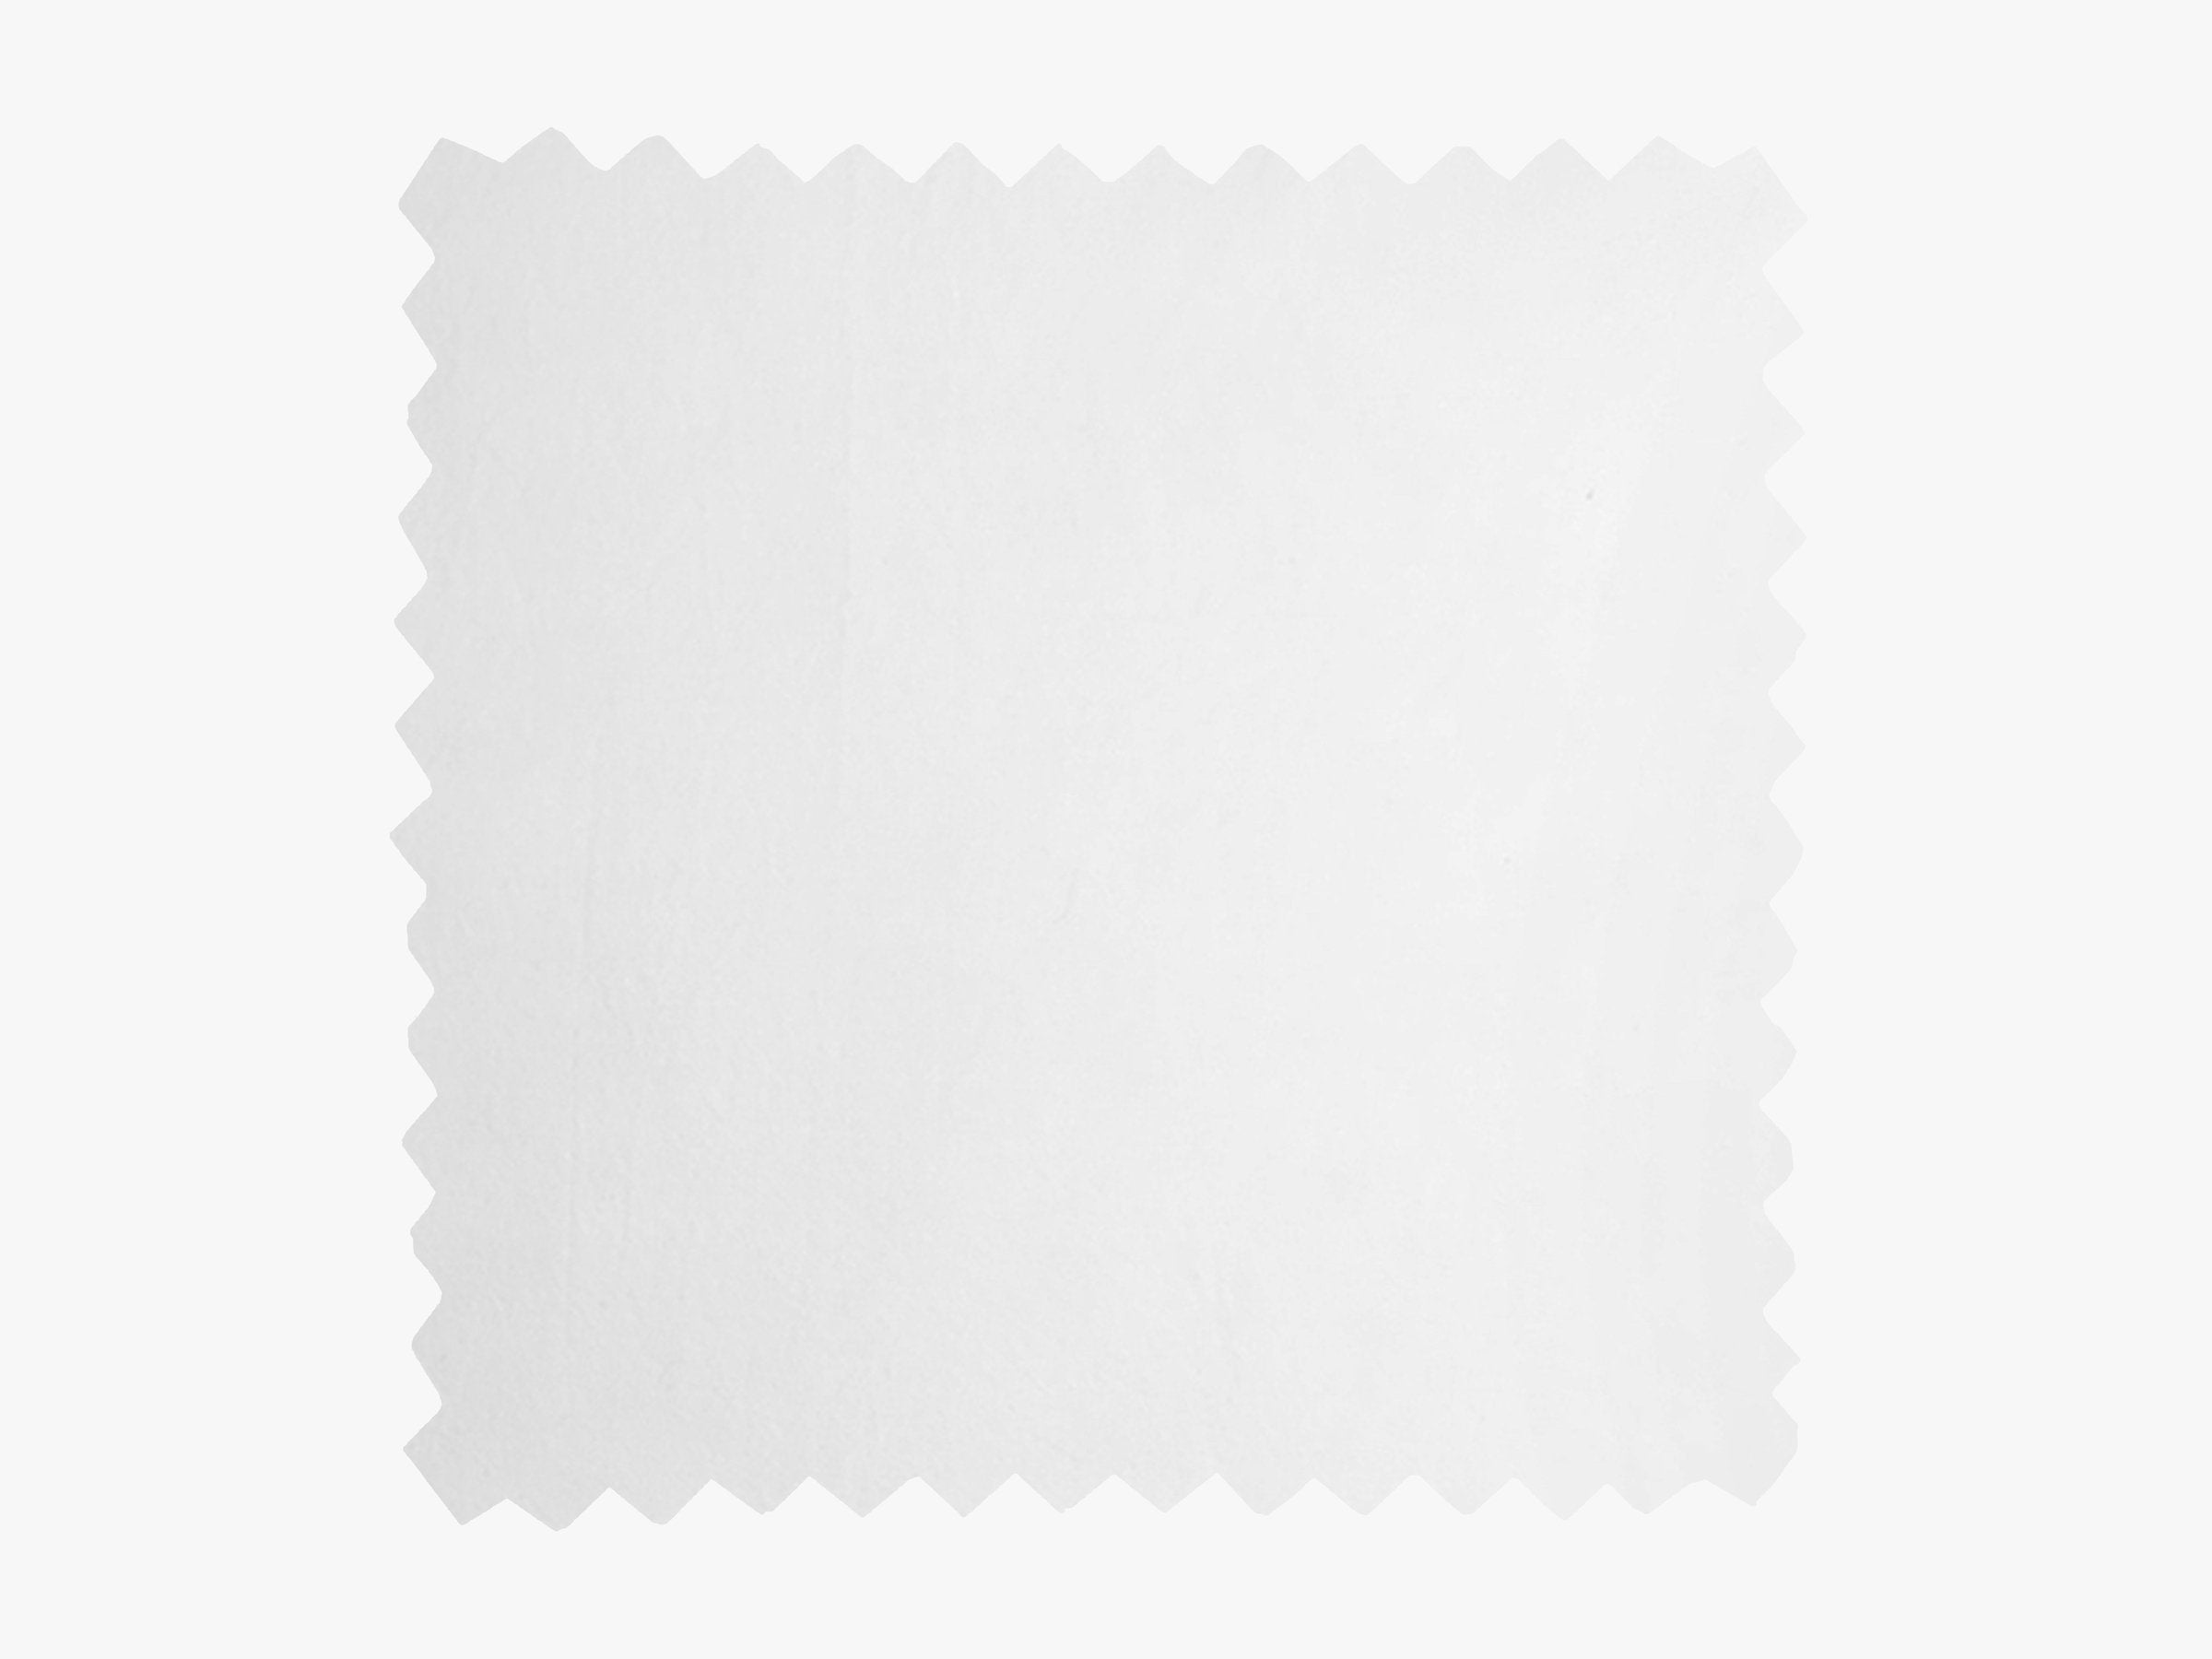 White Brushed Cotton Fabric Swatch Product Image